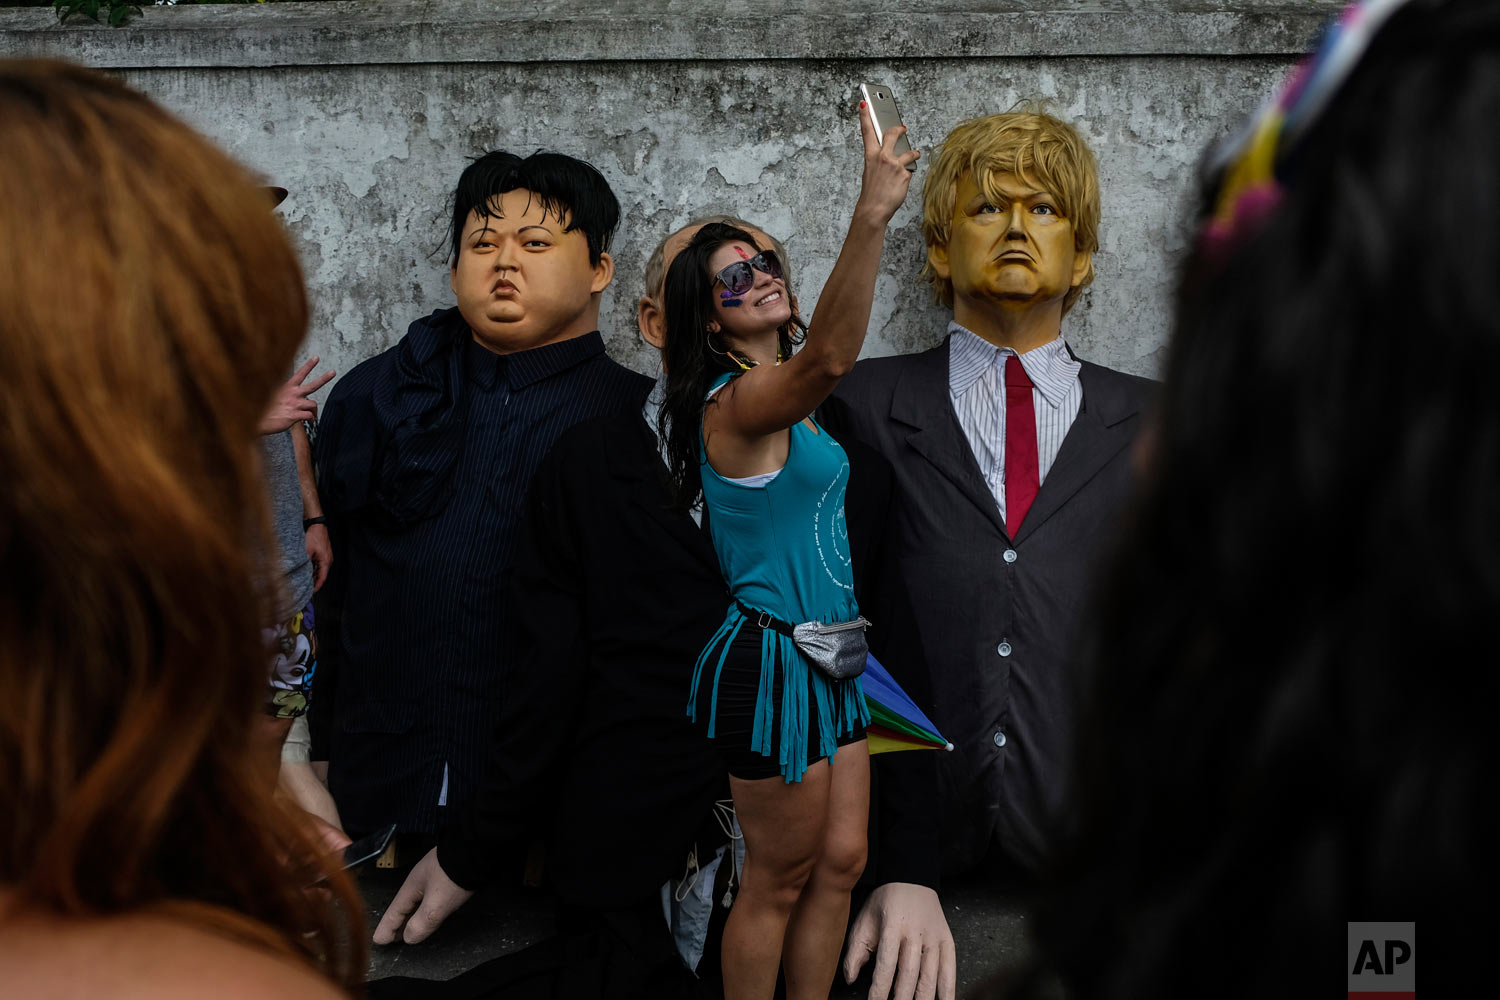 In this March 4, 2019 photo, a woman takes a selfie next to giant dolls depicting U.S. President Donald Trump, right, and North Korean leader Kim Jong-un, during carnival celebrations in Olinda, Pernambuco state, Brazil. (AP Photo/Diego Herculano)